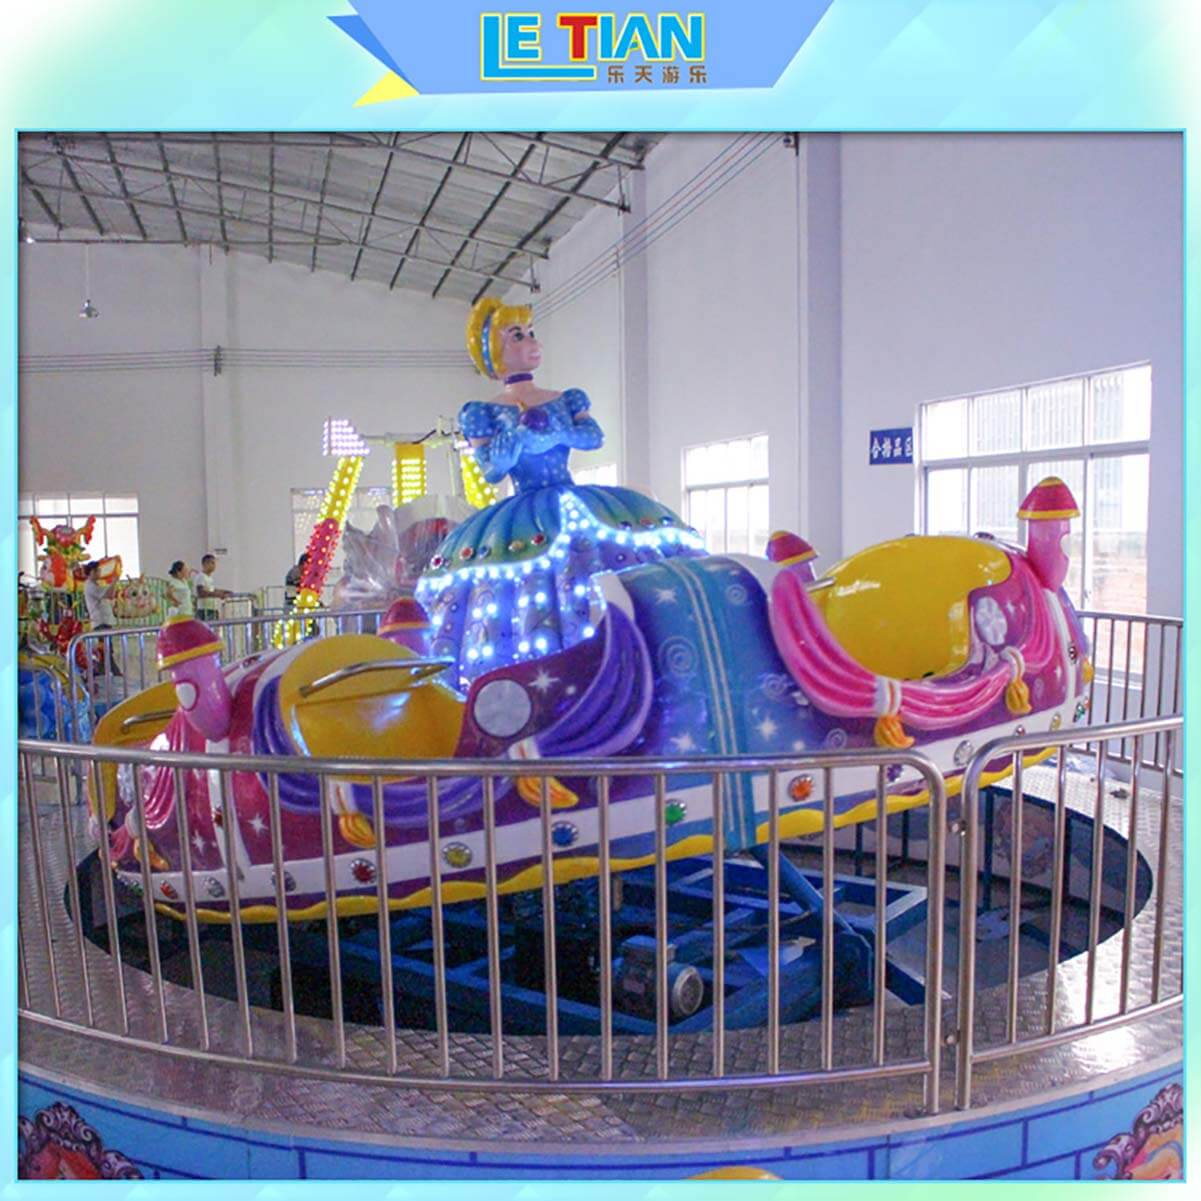 LETIAN theme outdoor playground equipment wholesale theme park-2